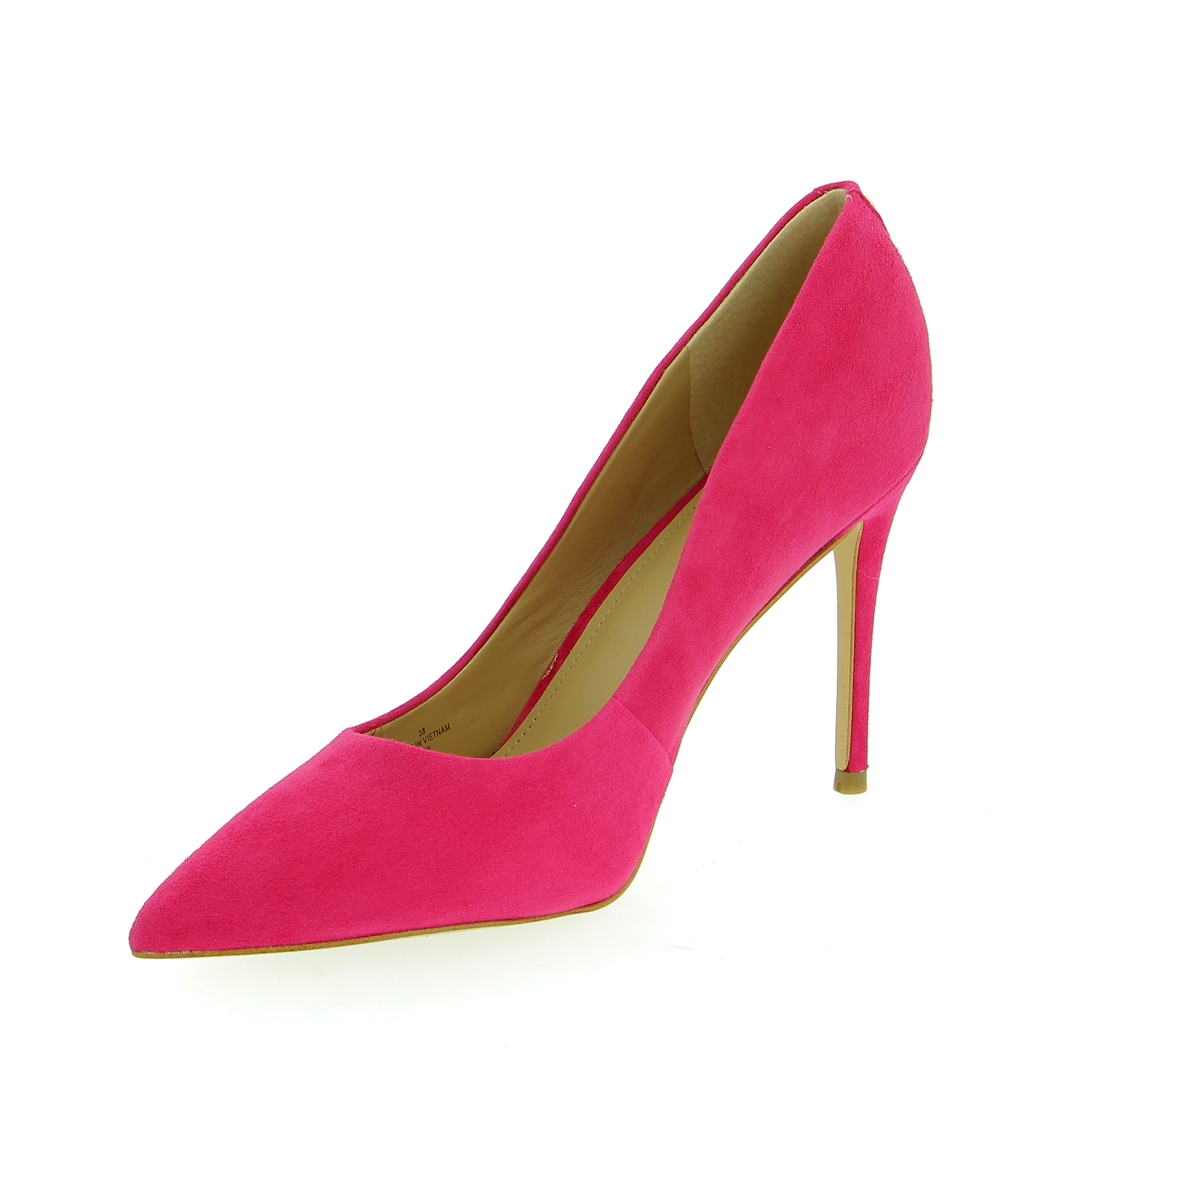 Guess Pumps fuchsia